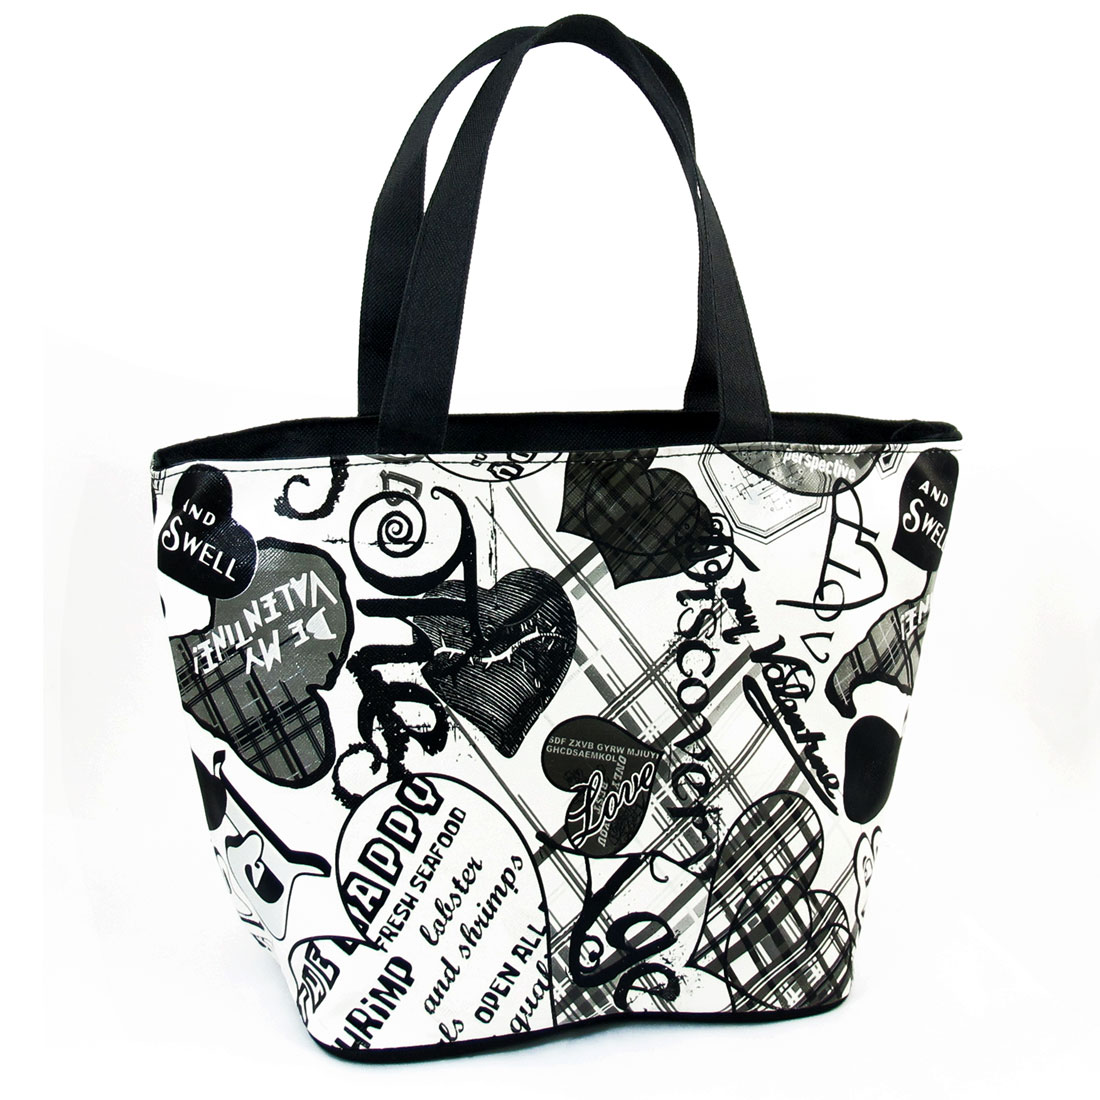 Compact Zip up Black White Hearts Letters Prints Black White Shopping Handbag